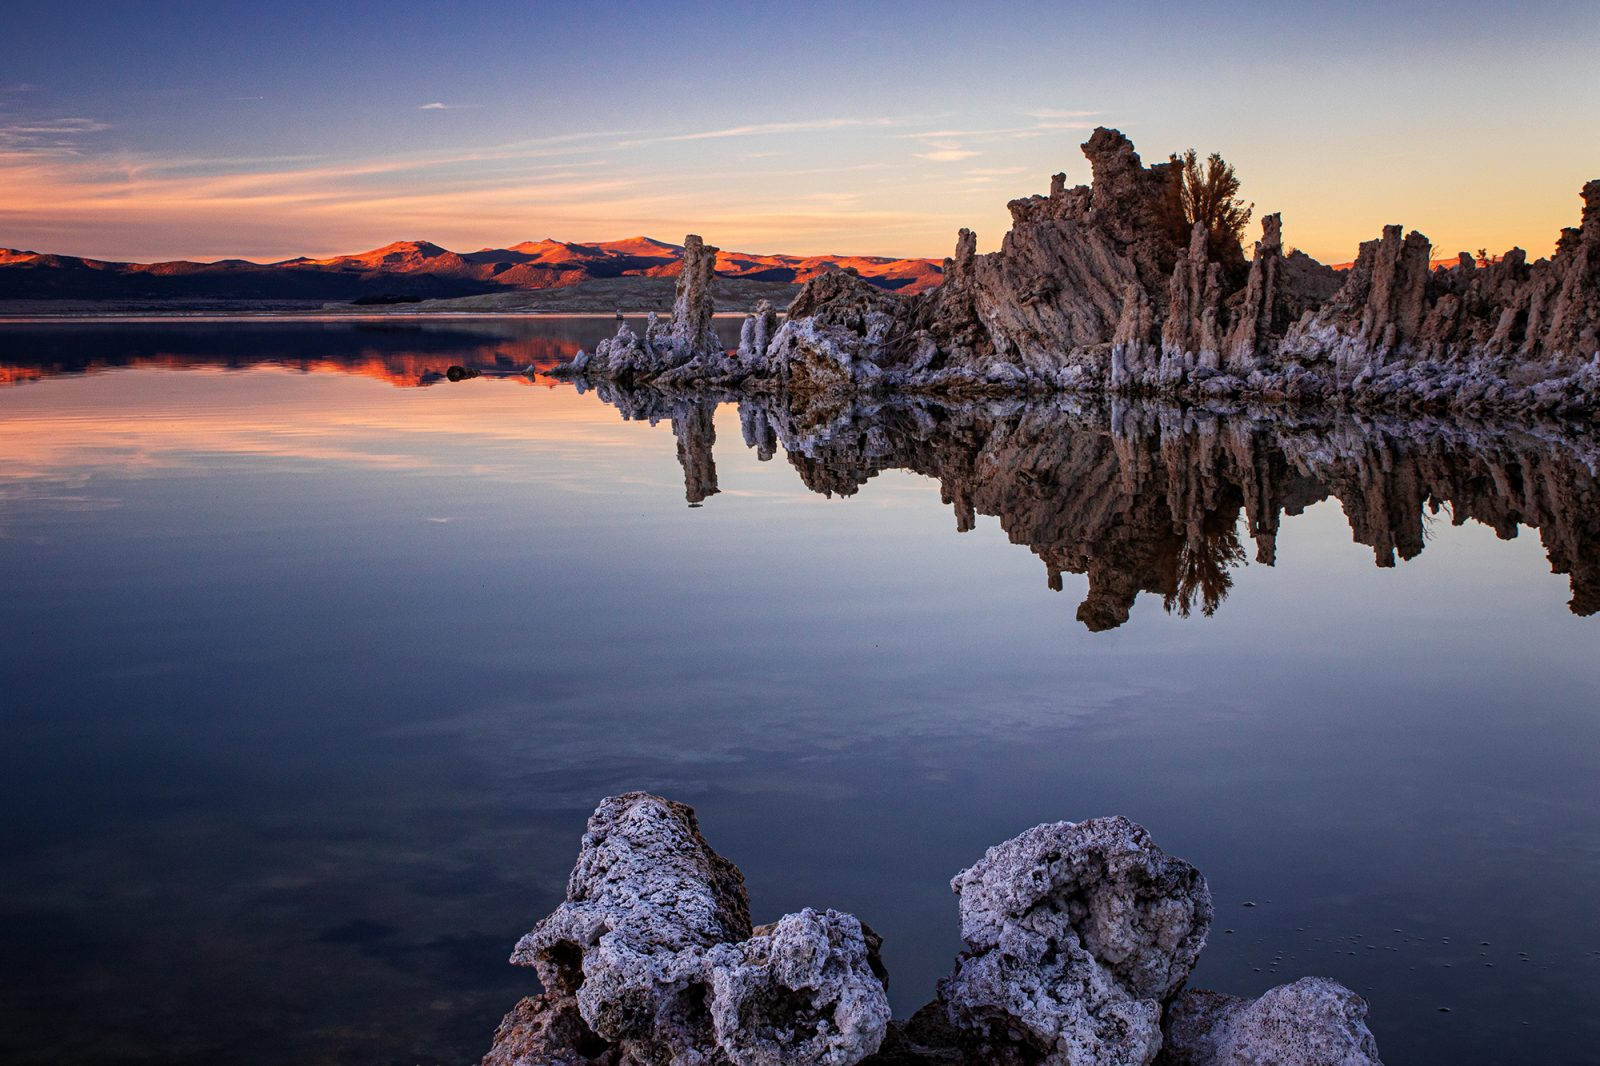 Mono Lake at the end of the day